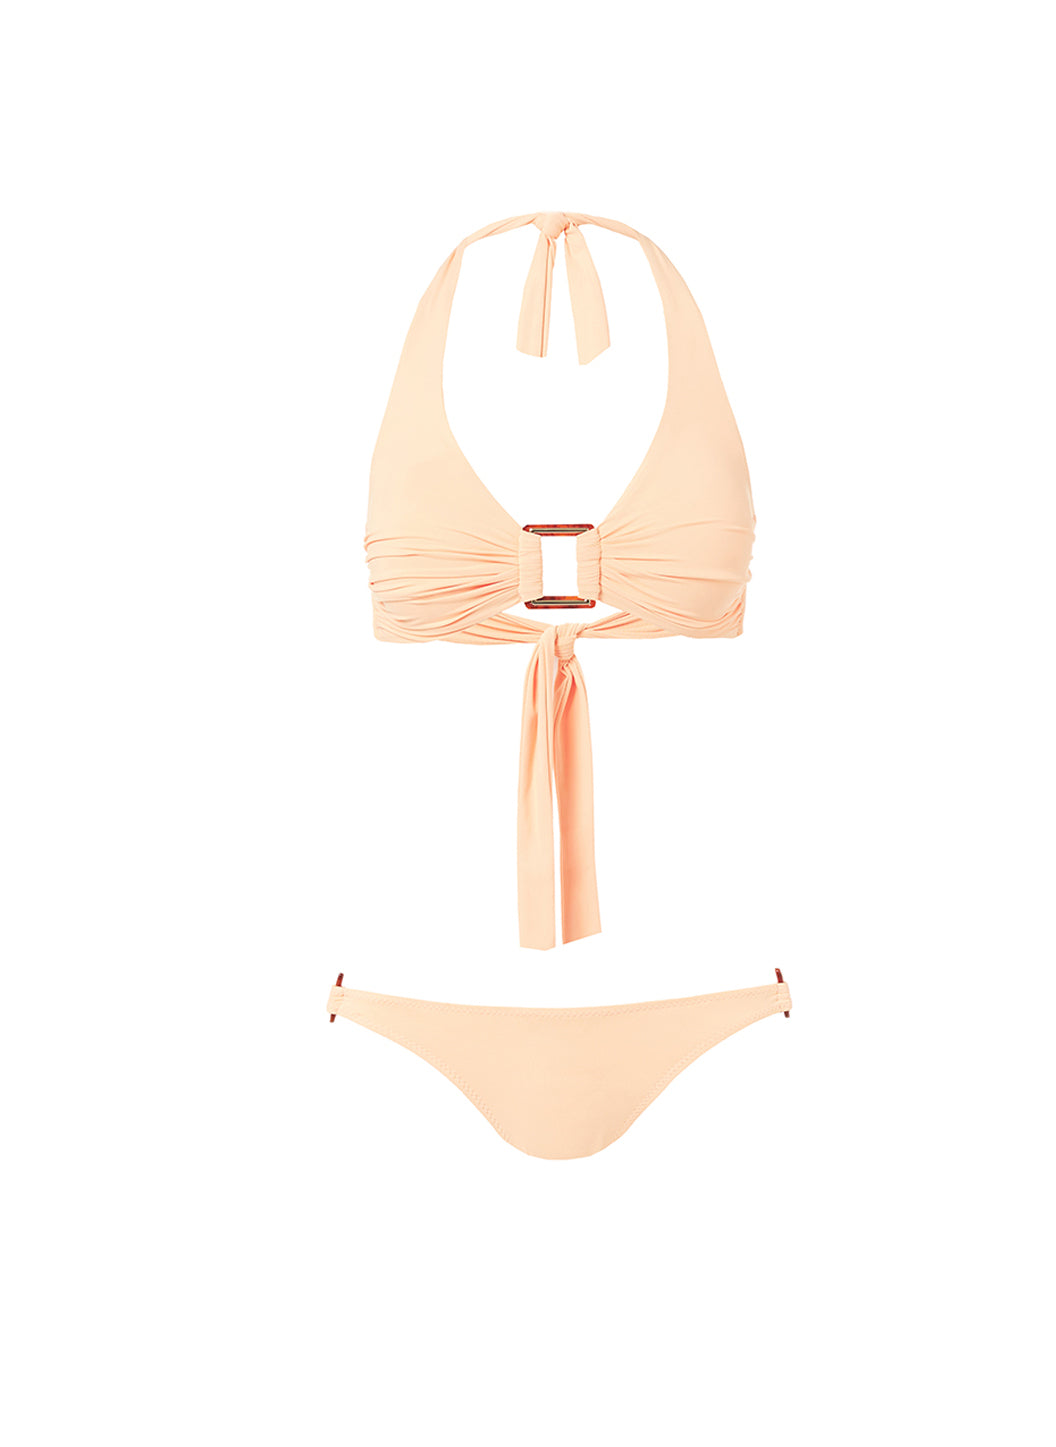 Paris Mango Halterneck Rectangle Trim Bikini - Melissa Odabash Bikinis